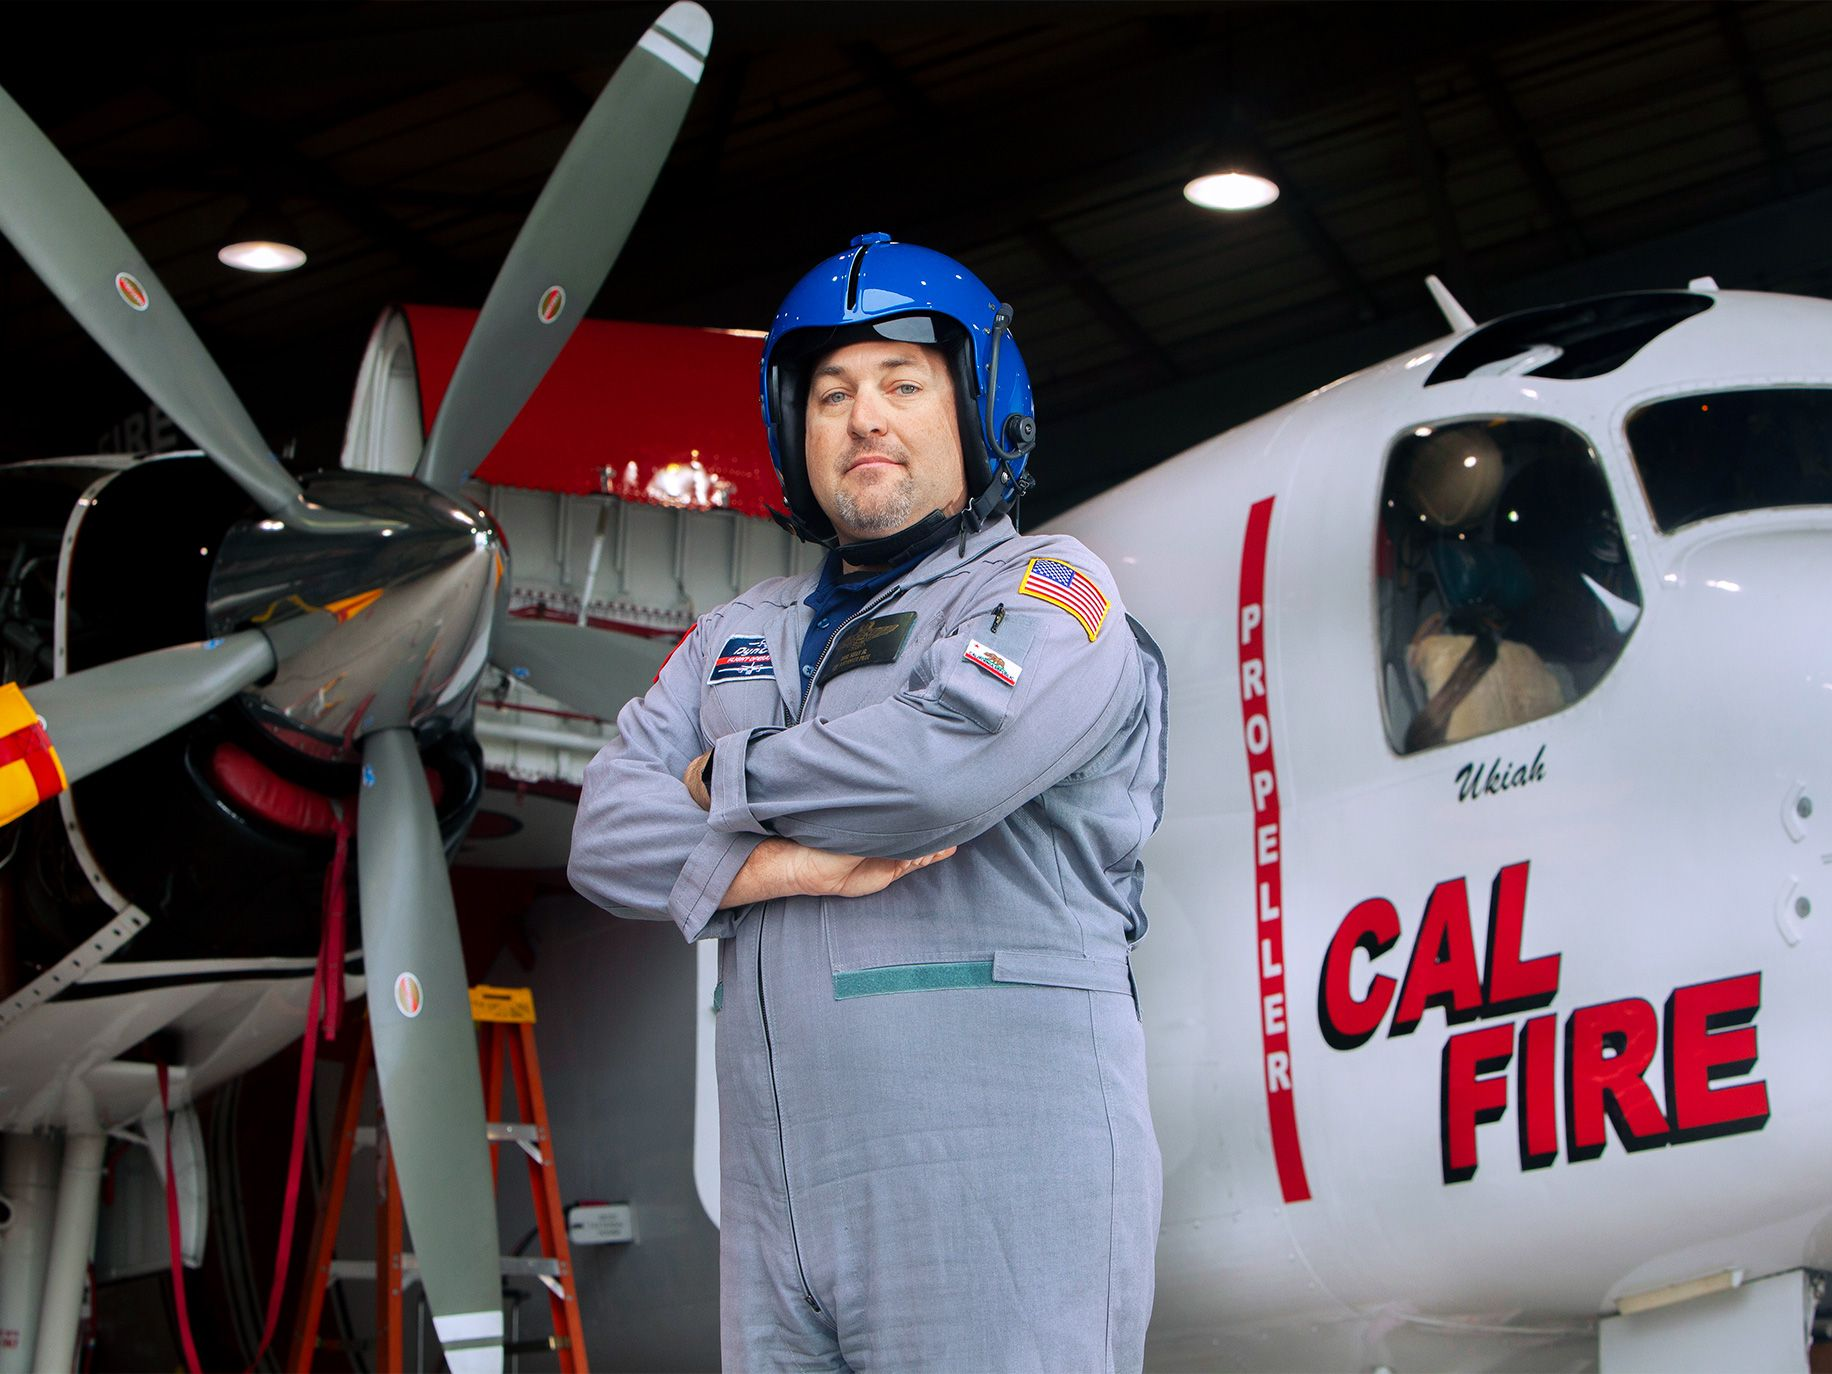 Cal Fire air tanker pilot David Kelly at McClellan Airfield.